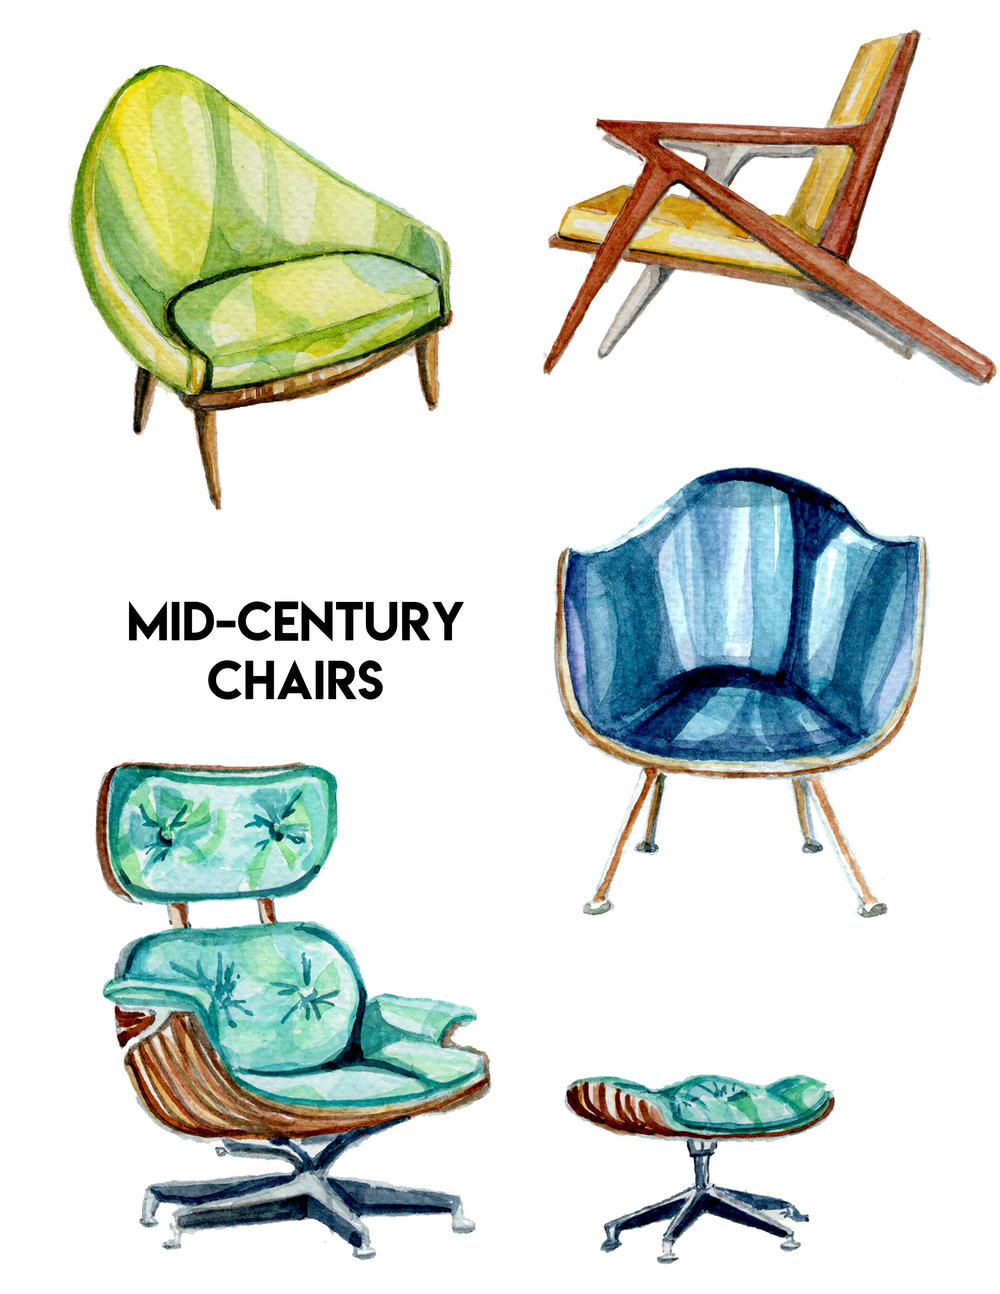 mid century chairs blog.jpg